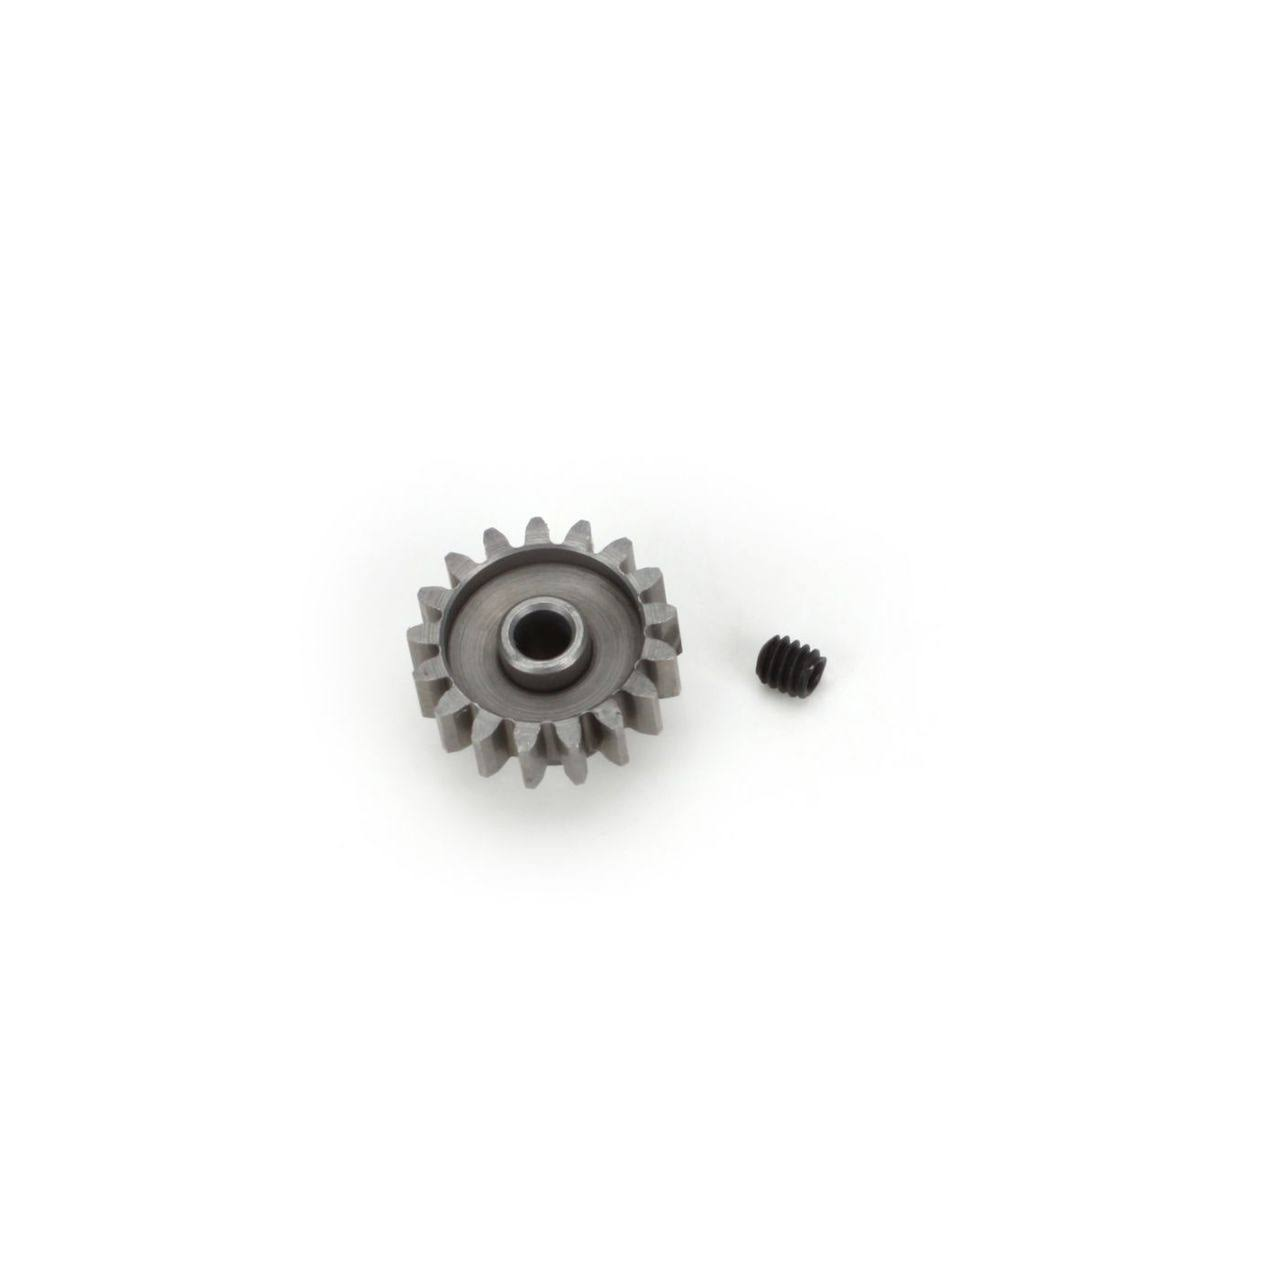 Robinson Racing 1717 Hardened 32p Absolute Pinion - 17t